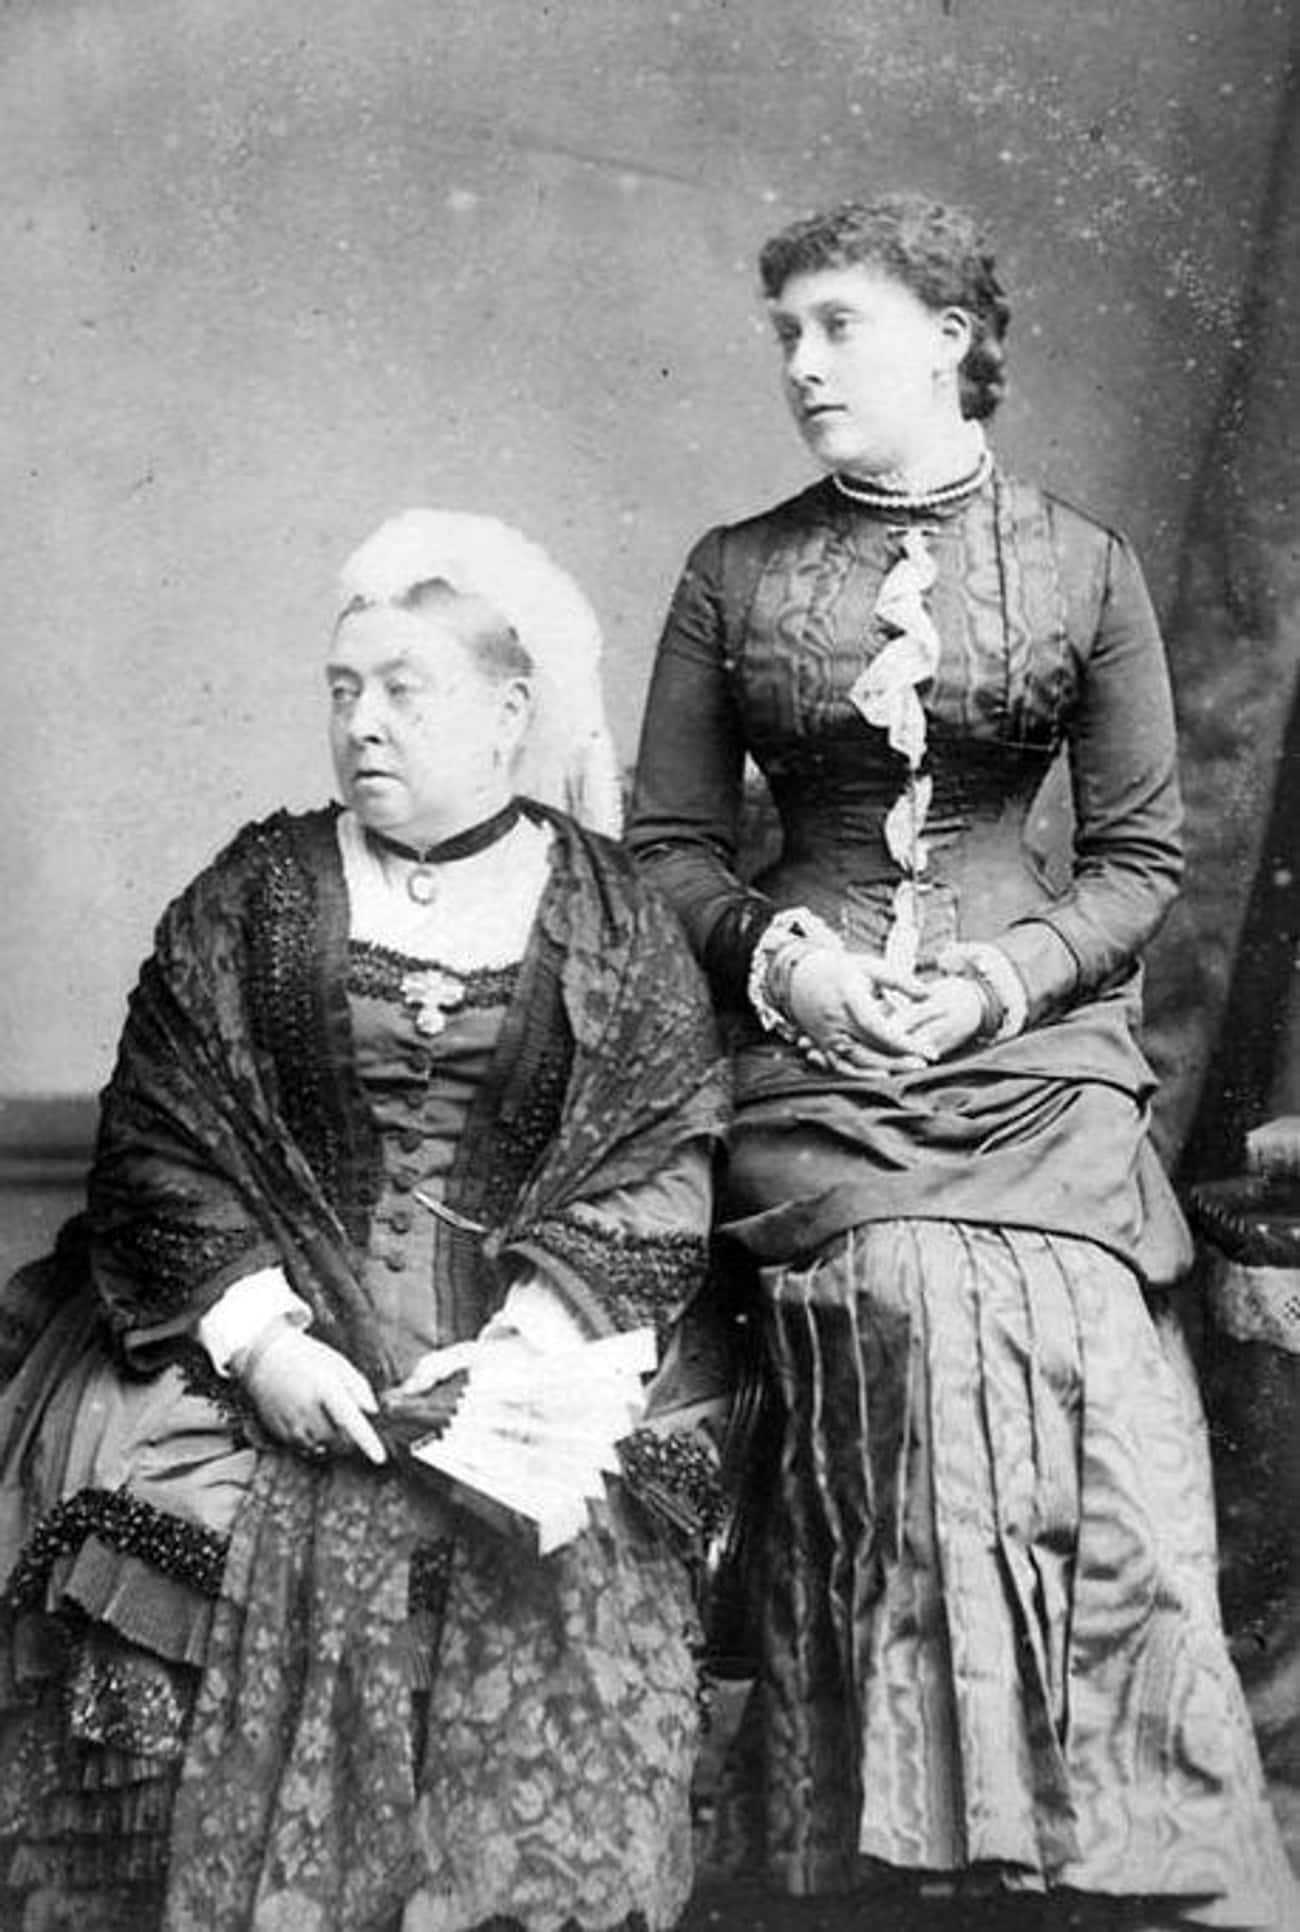 When Queen Victoria's Daughter Beatrice Wanted To Get Married, She Stopped Talking To The Princess For Months